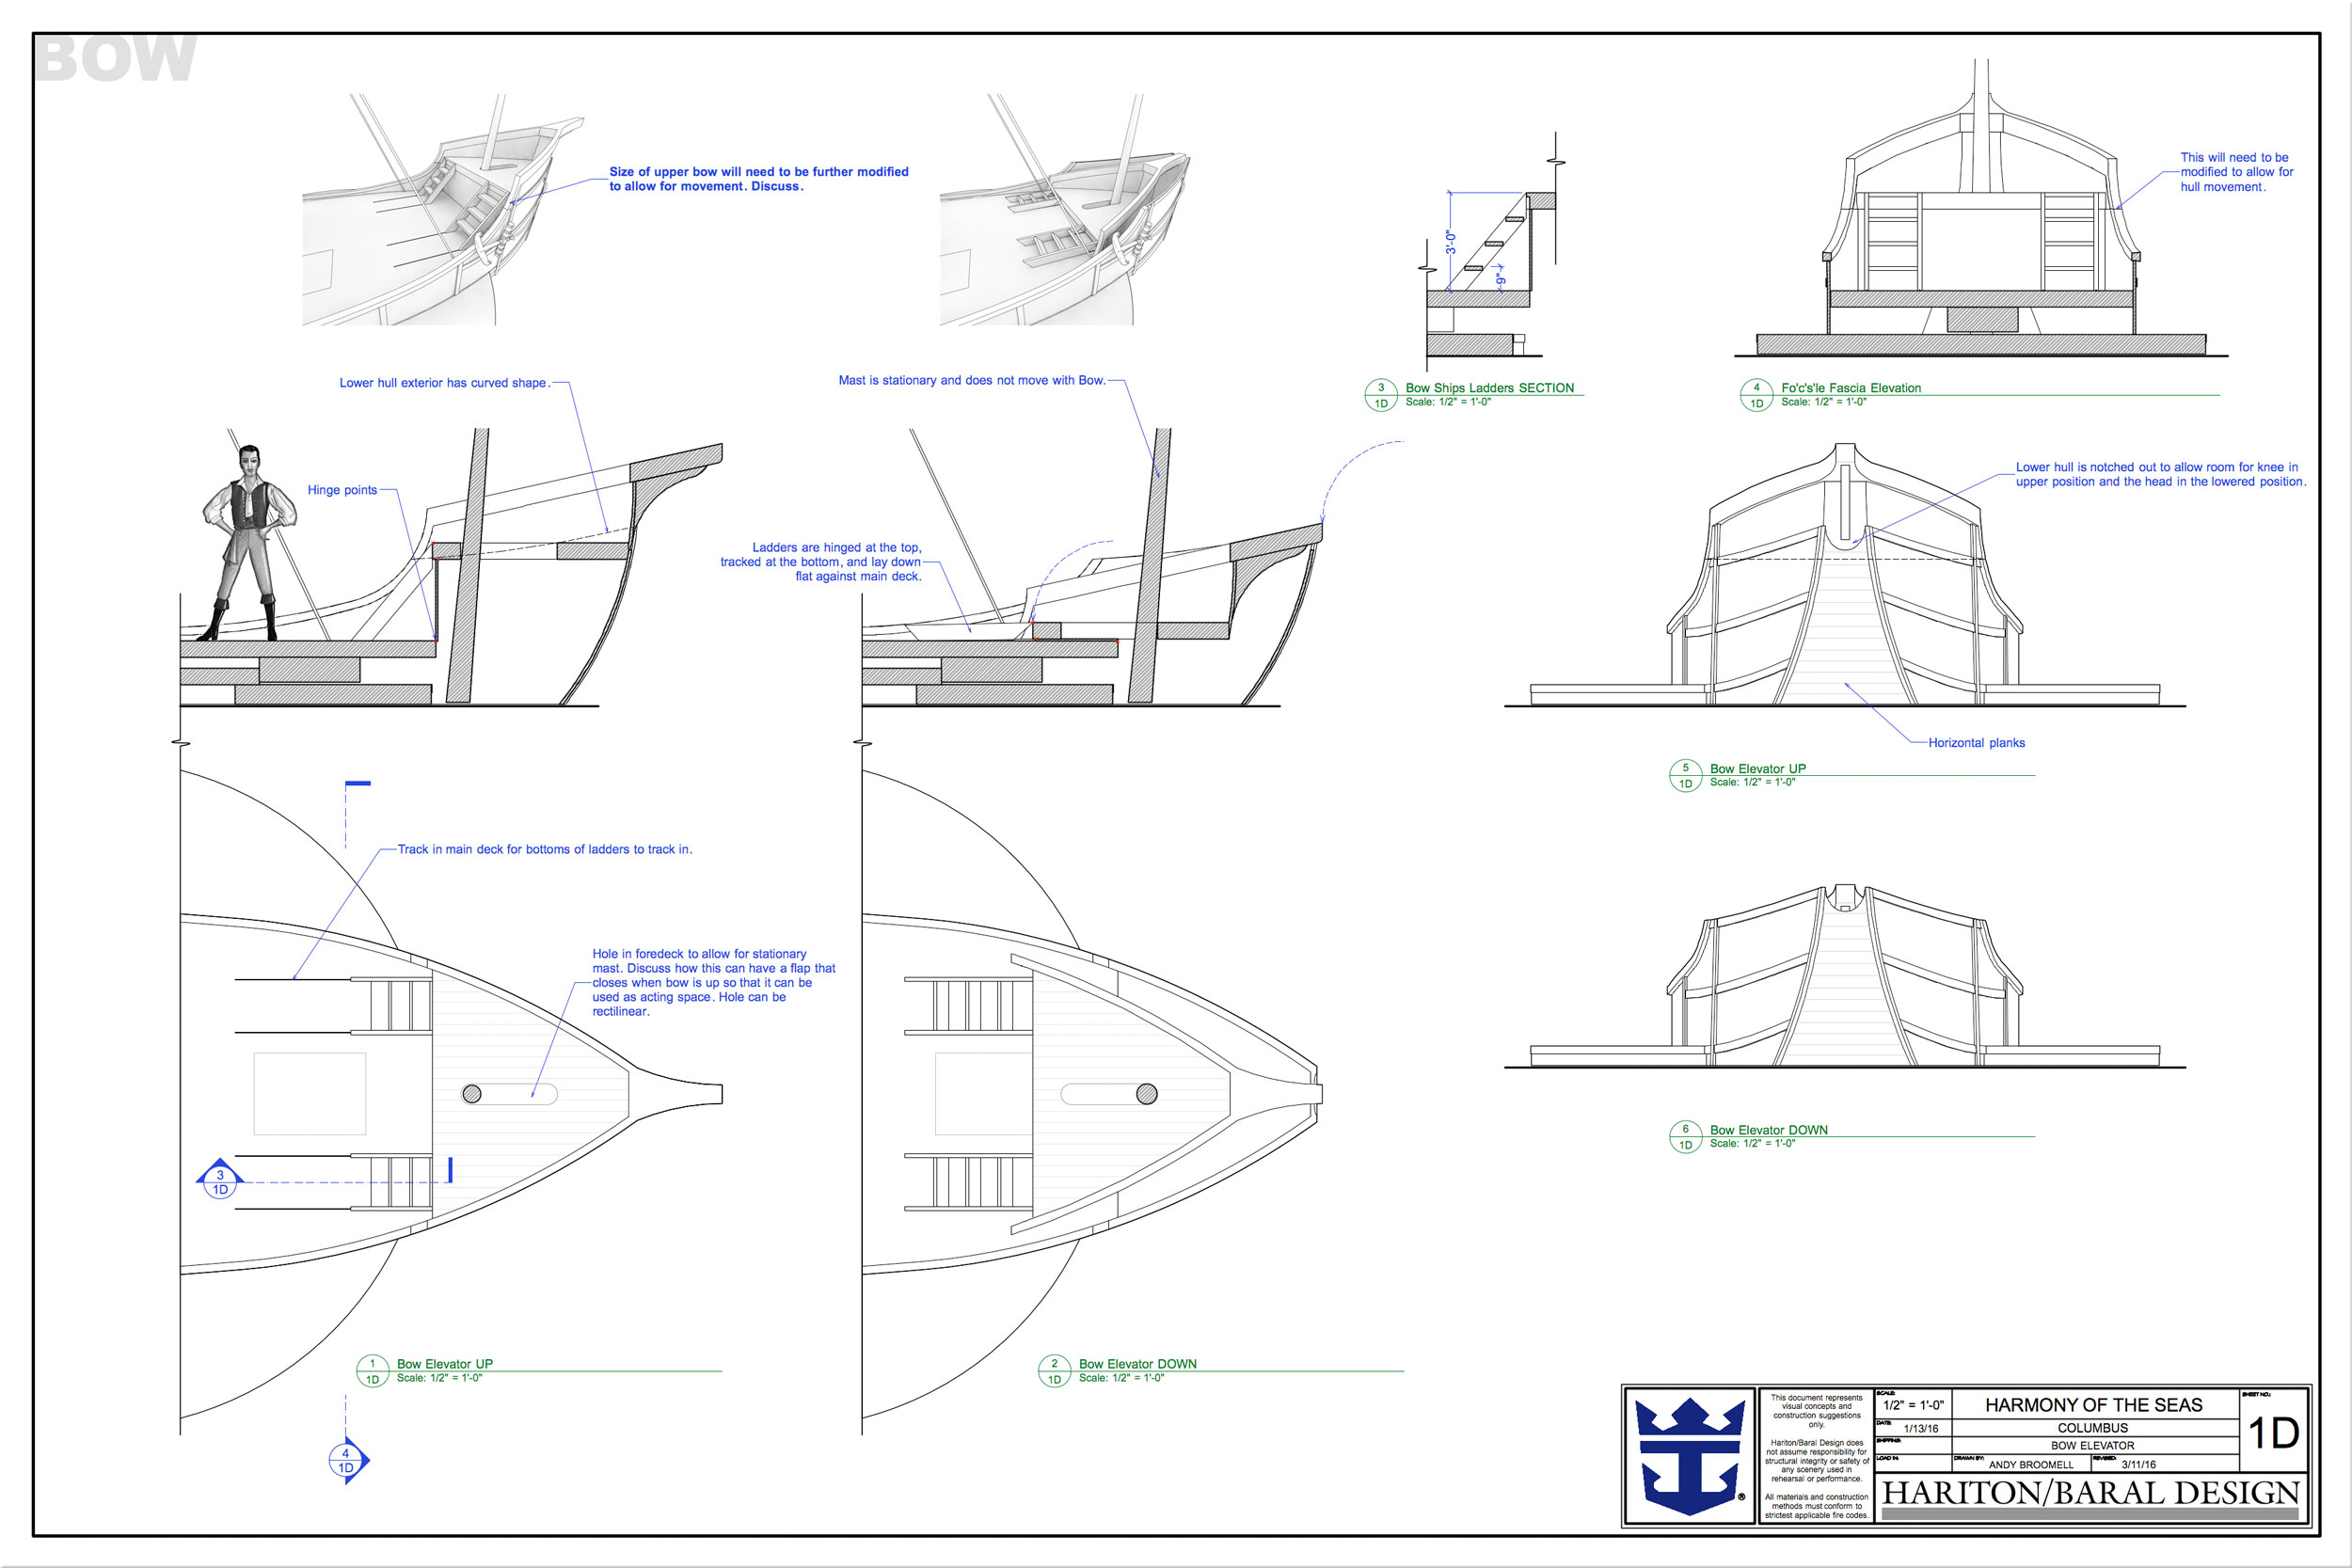 andy-broomell-drafting-columbus4-musical-vectorworks-scenic-design-scenery-plans-sailing-ship.jpg